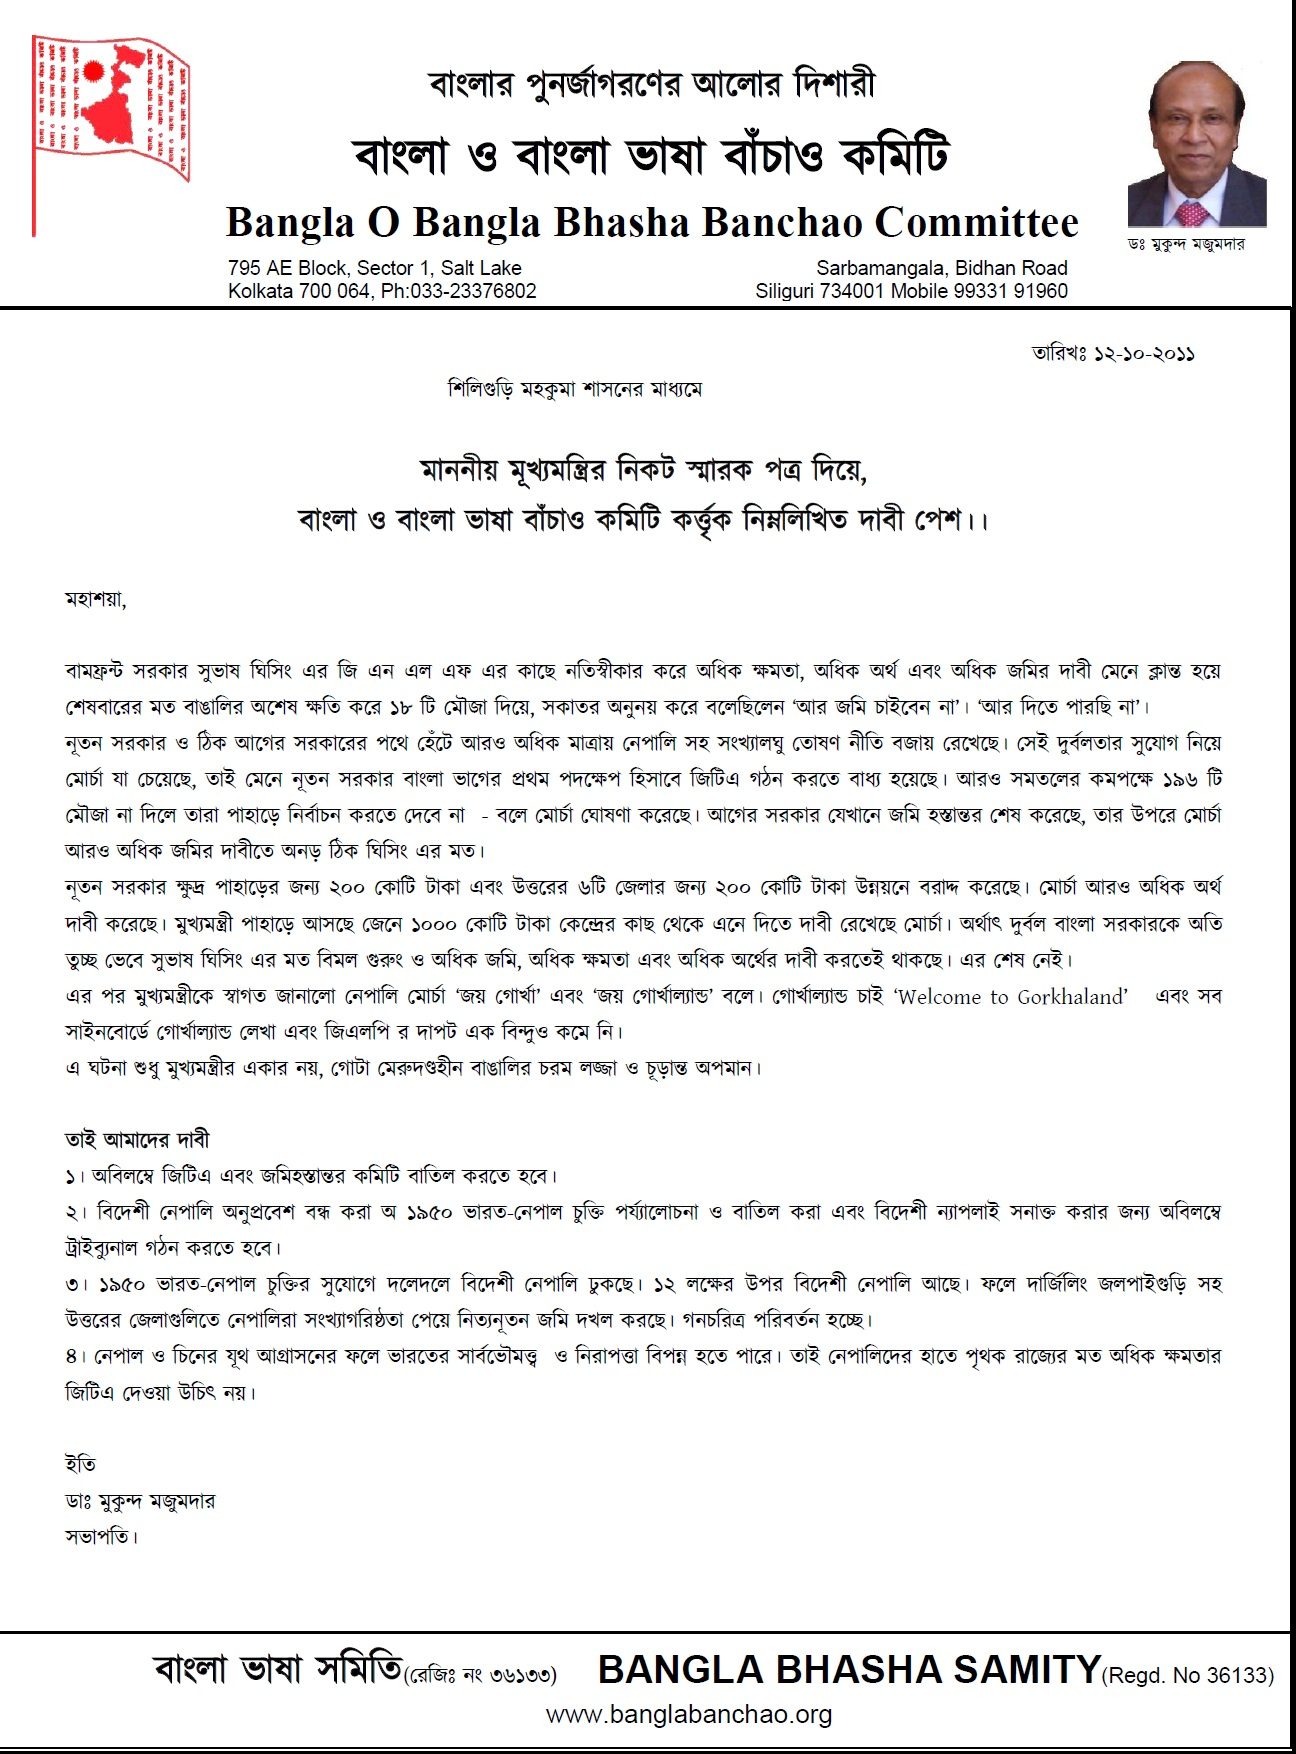 Sample Letter To Chief Minister Of West Bengal